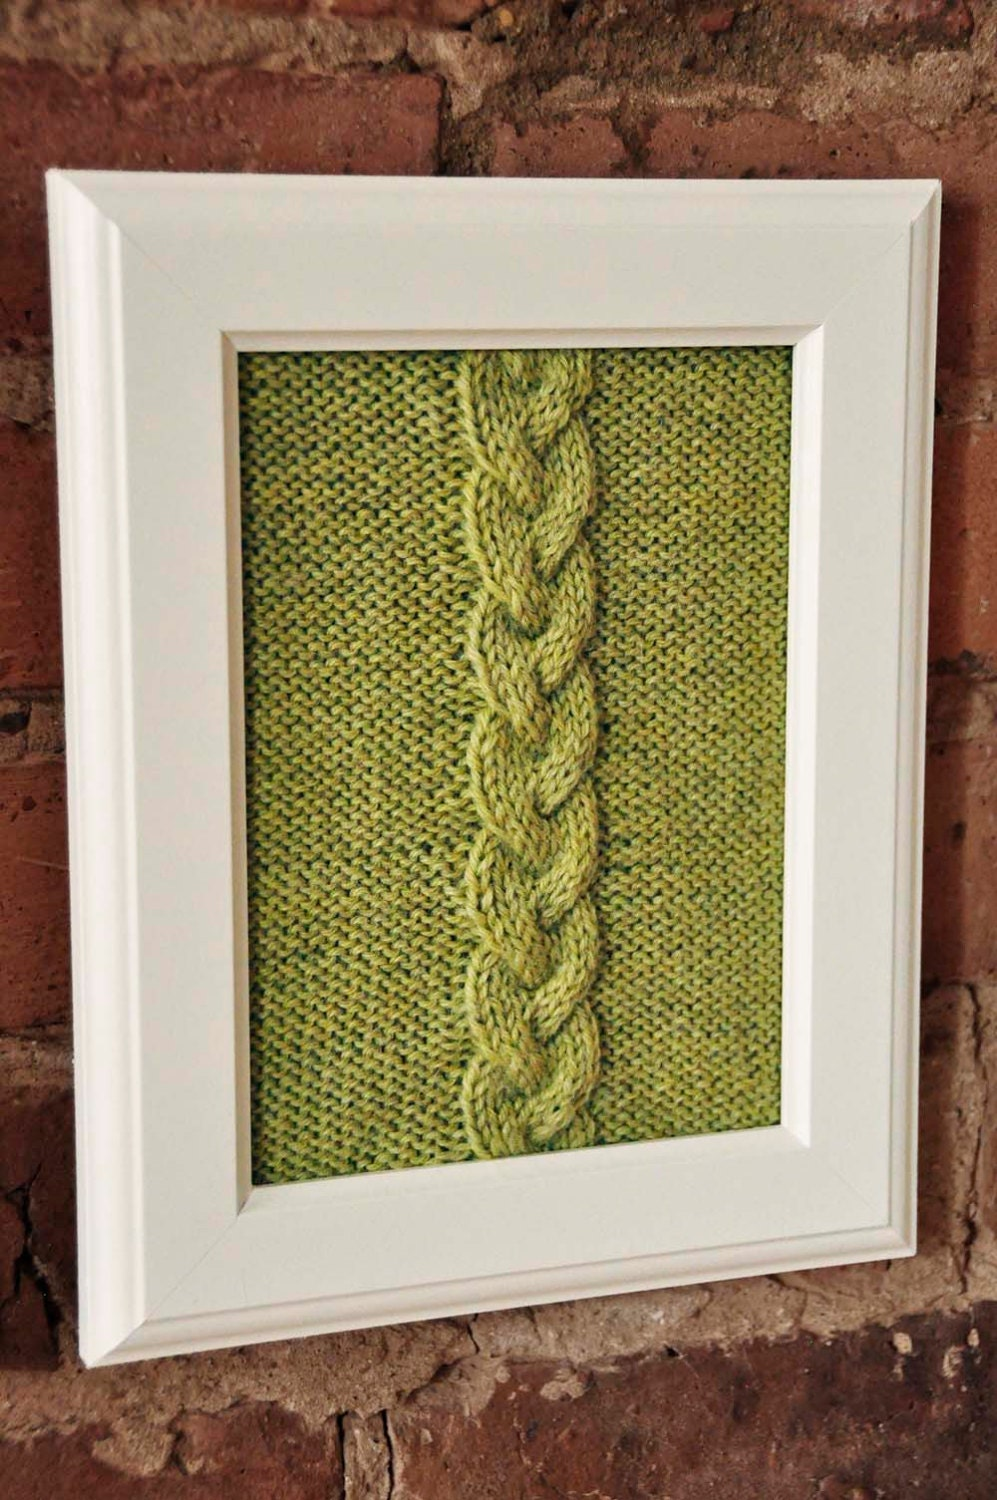 Cable Panels Knitted Wall Art KNITTING PATTERN INSTRUCTIONS Framed ...